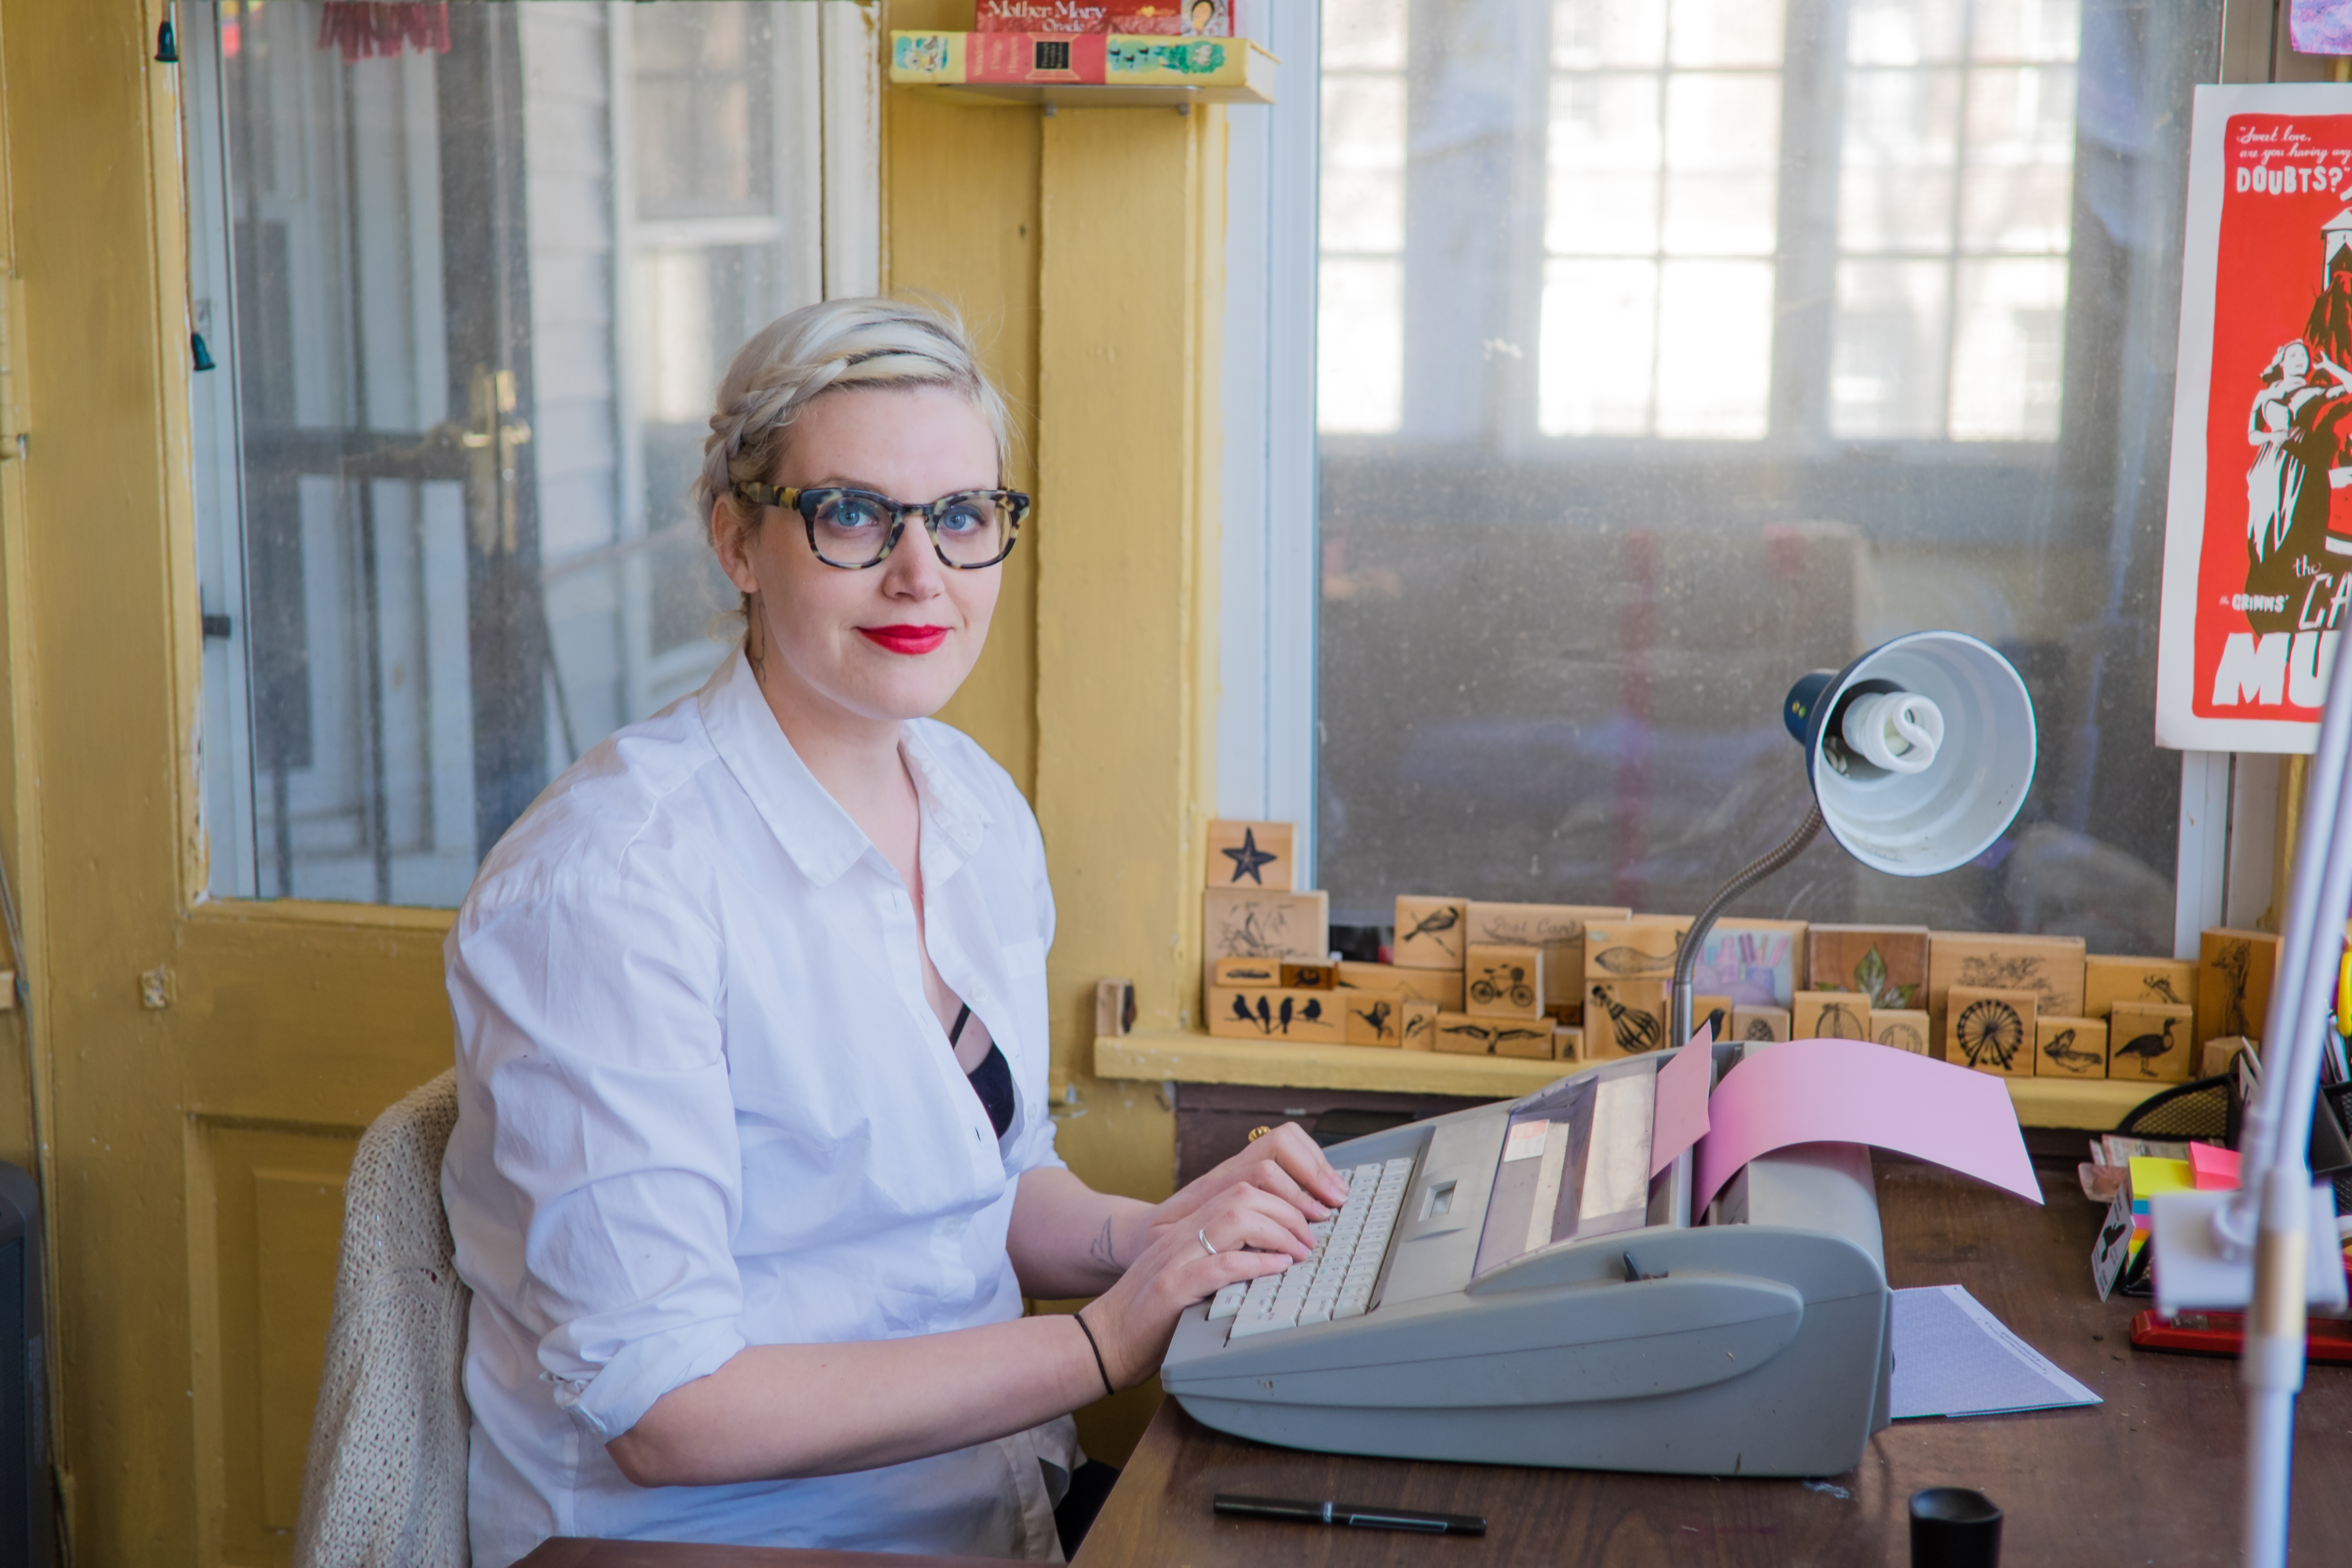 white woman with short platinum blonde hair and leopard print glasses sitting in front of a typewriter with pink paper in front of it on a wooden desk